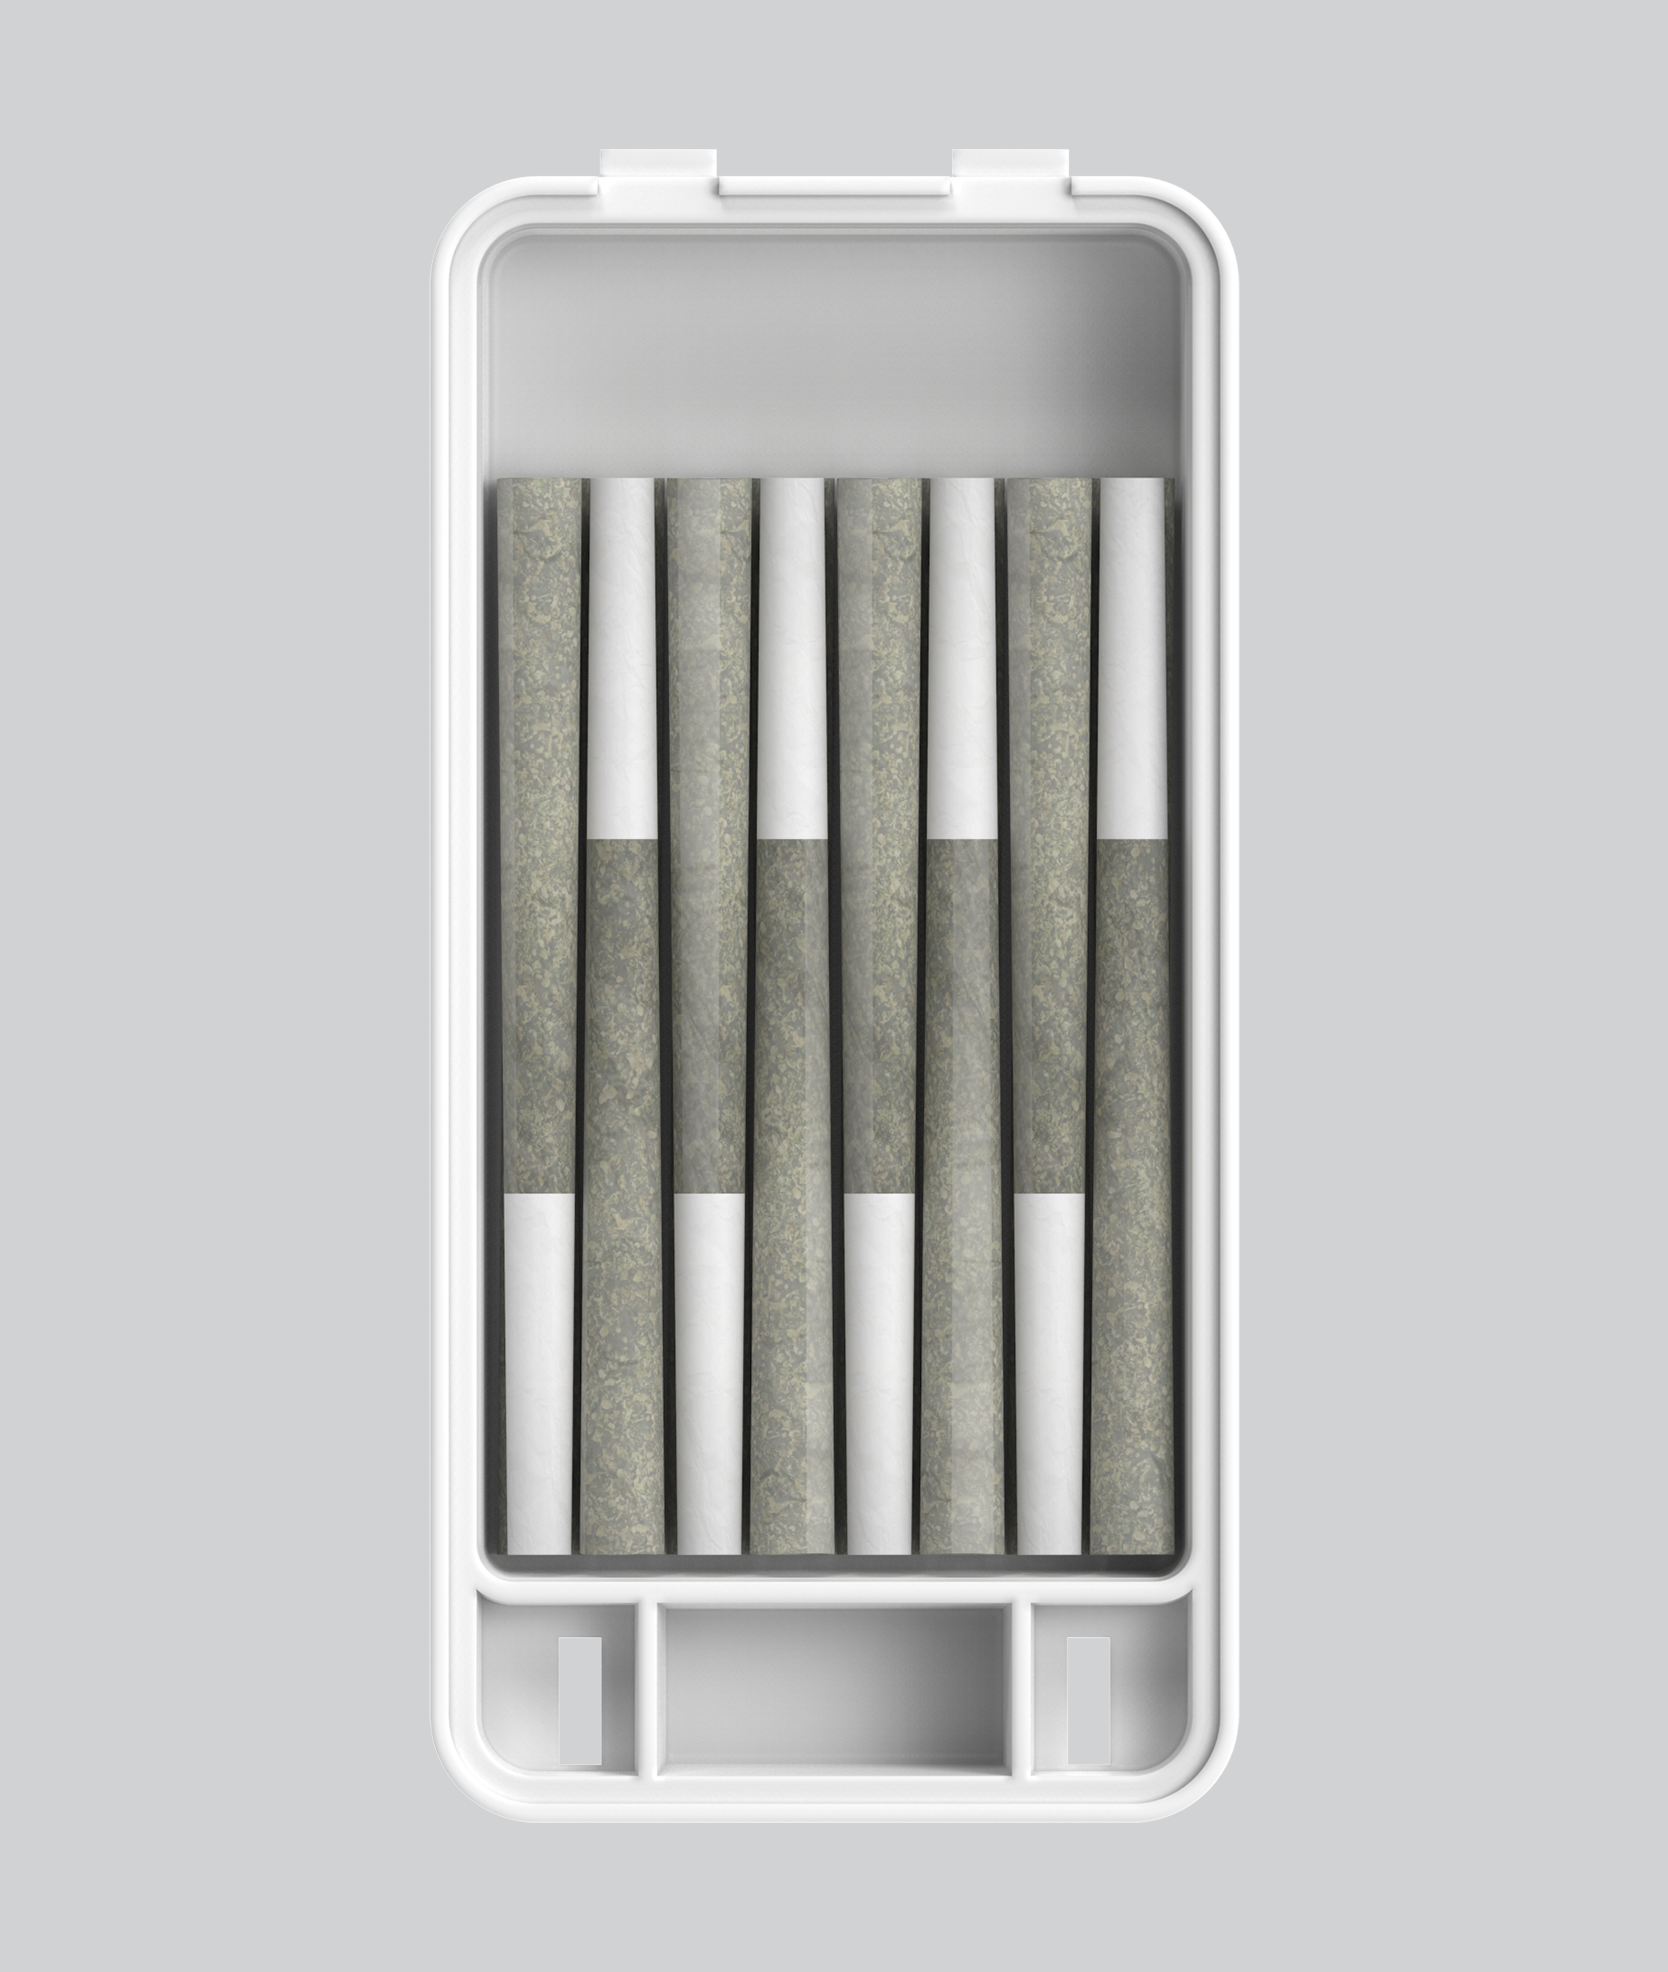 Snaptech-case-8-pre-roll-packaging